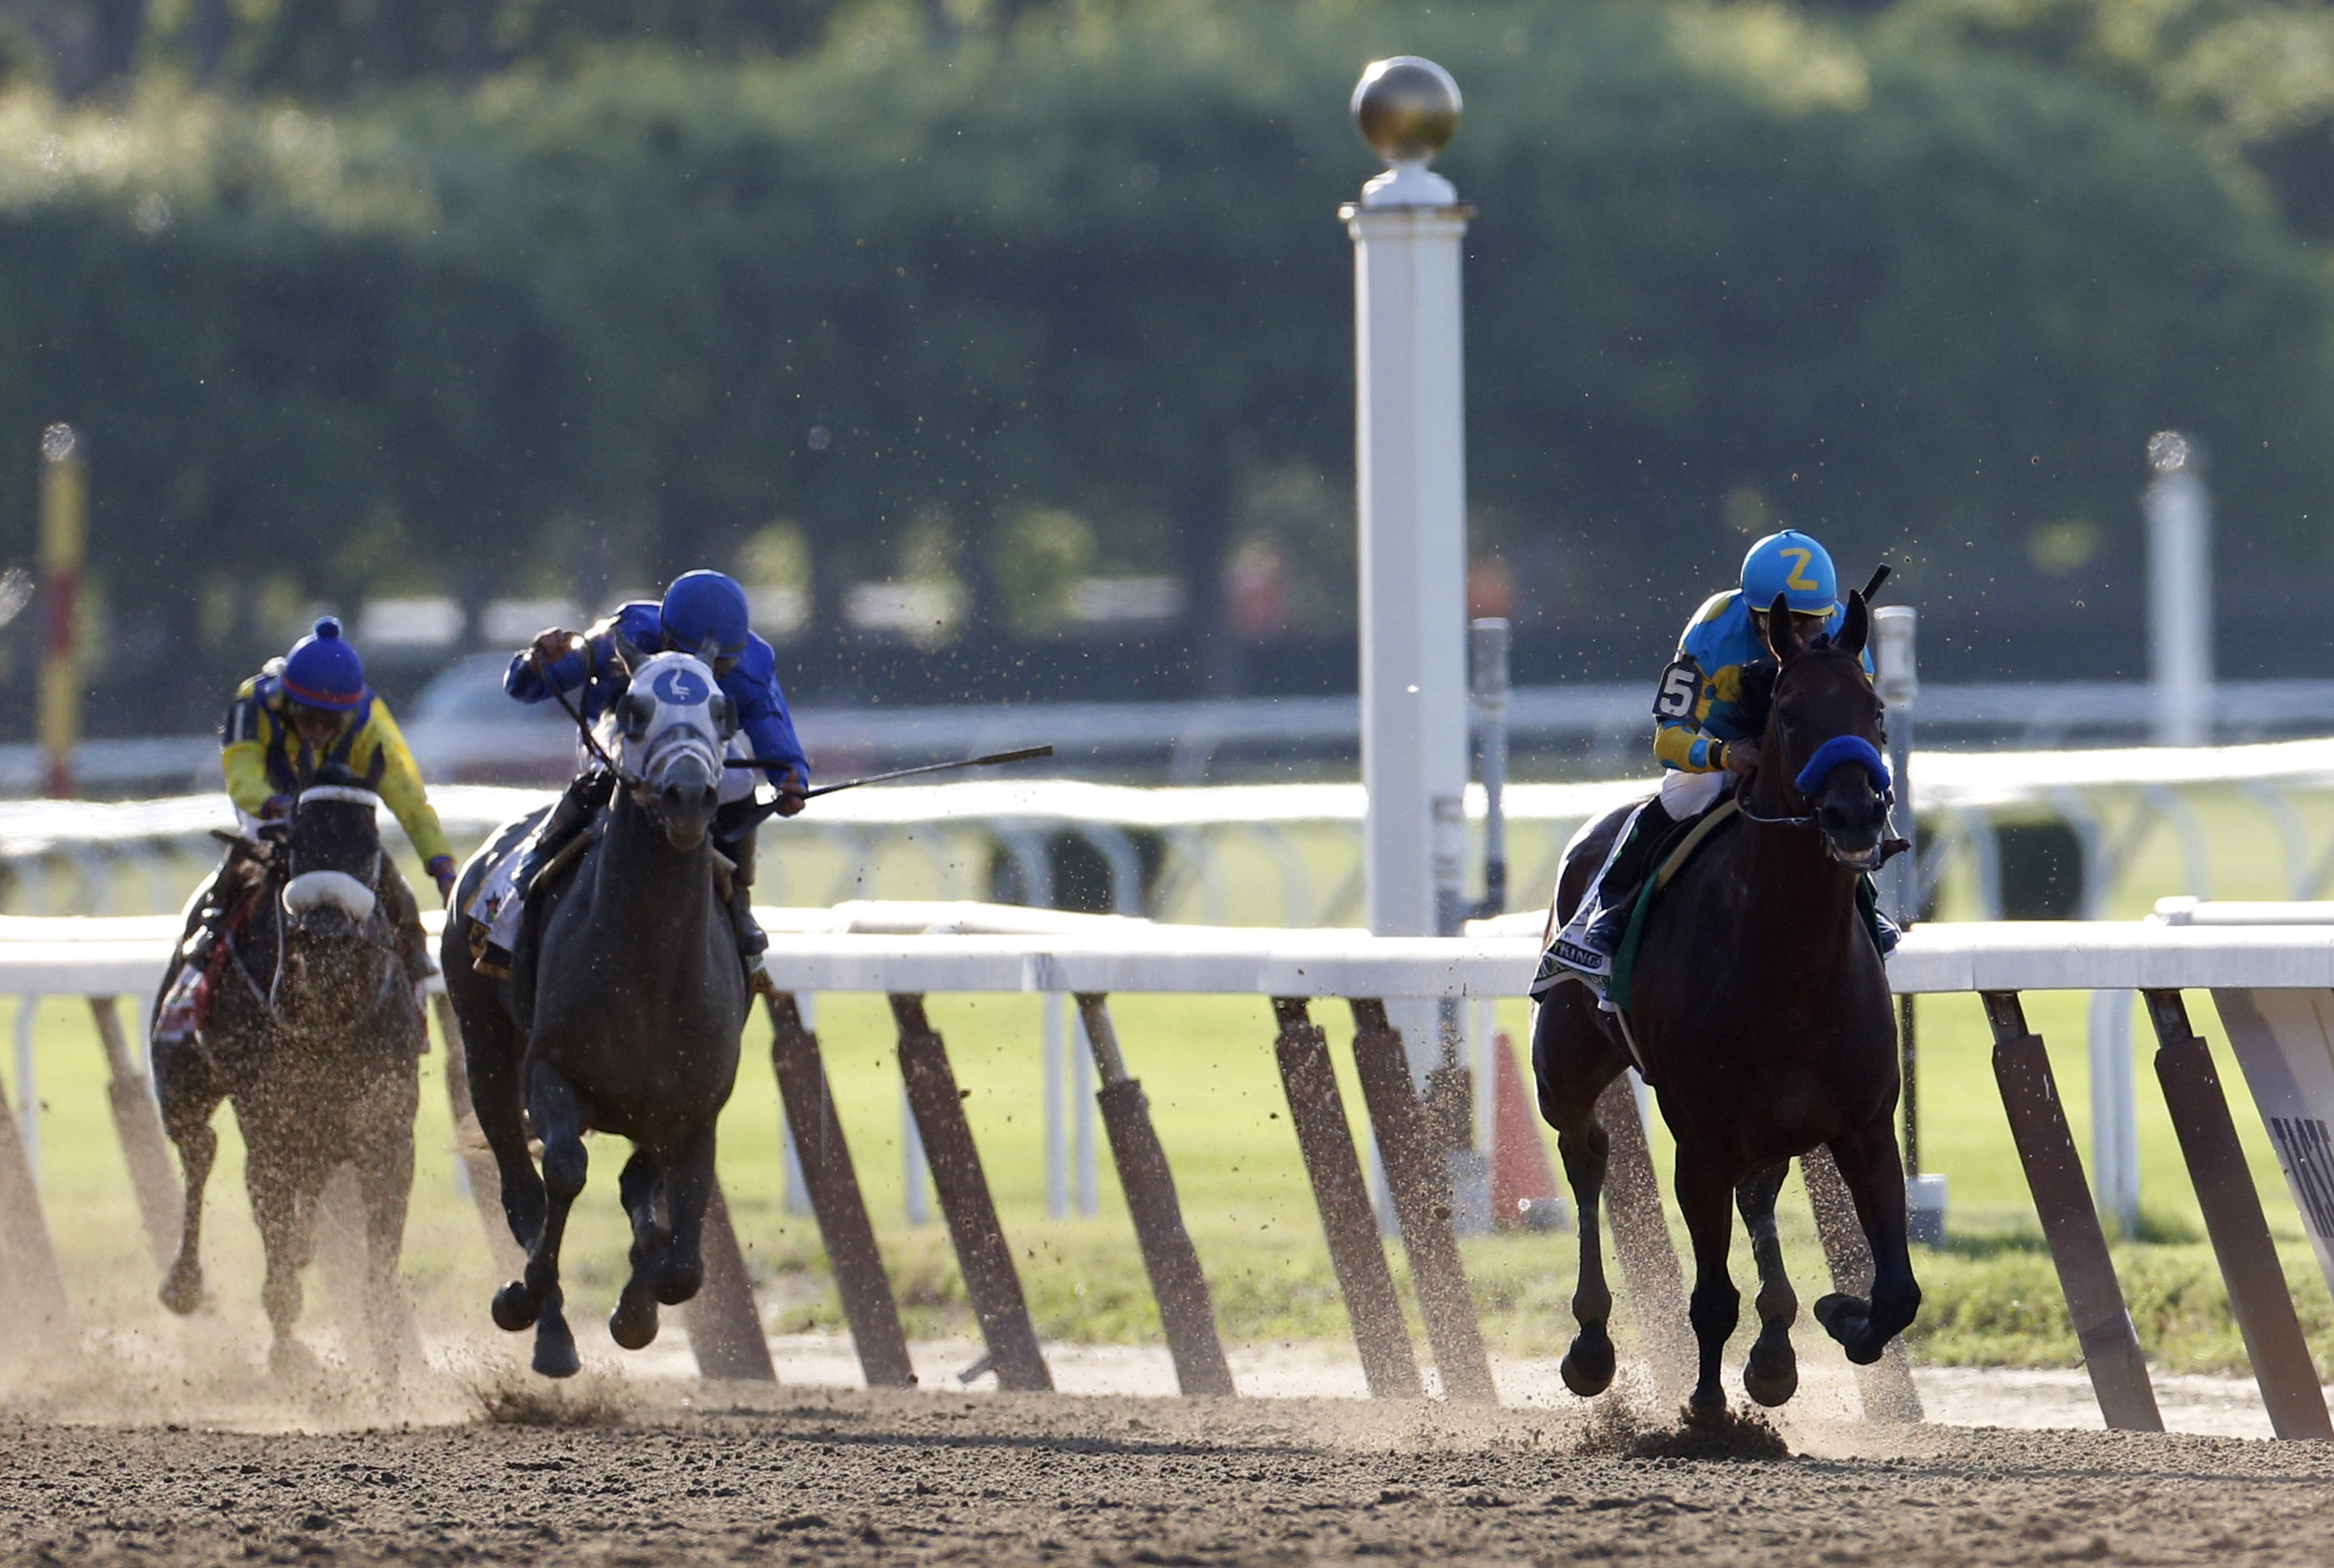 American Pharoah leads the pack en route to winning the 147th running of the Belmont Stakes. Photo by Shannon Stapleton /Reuters